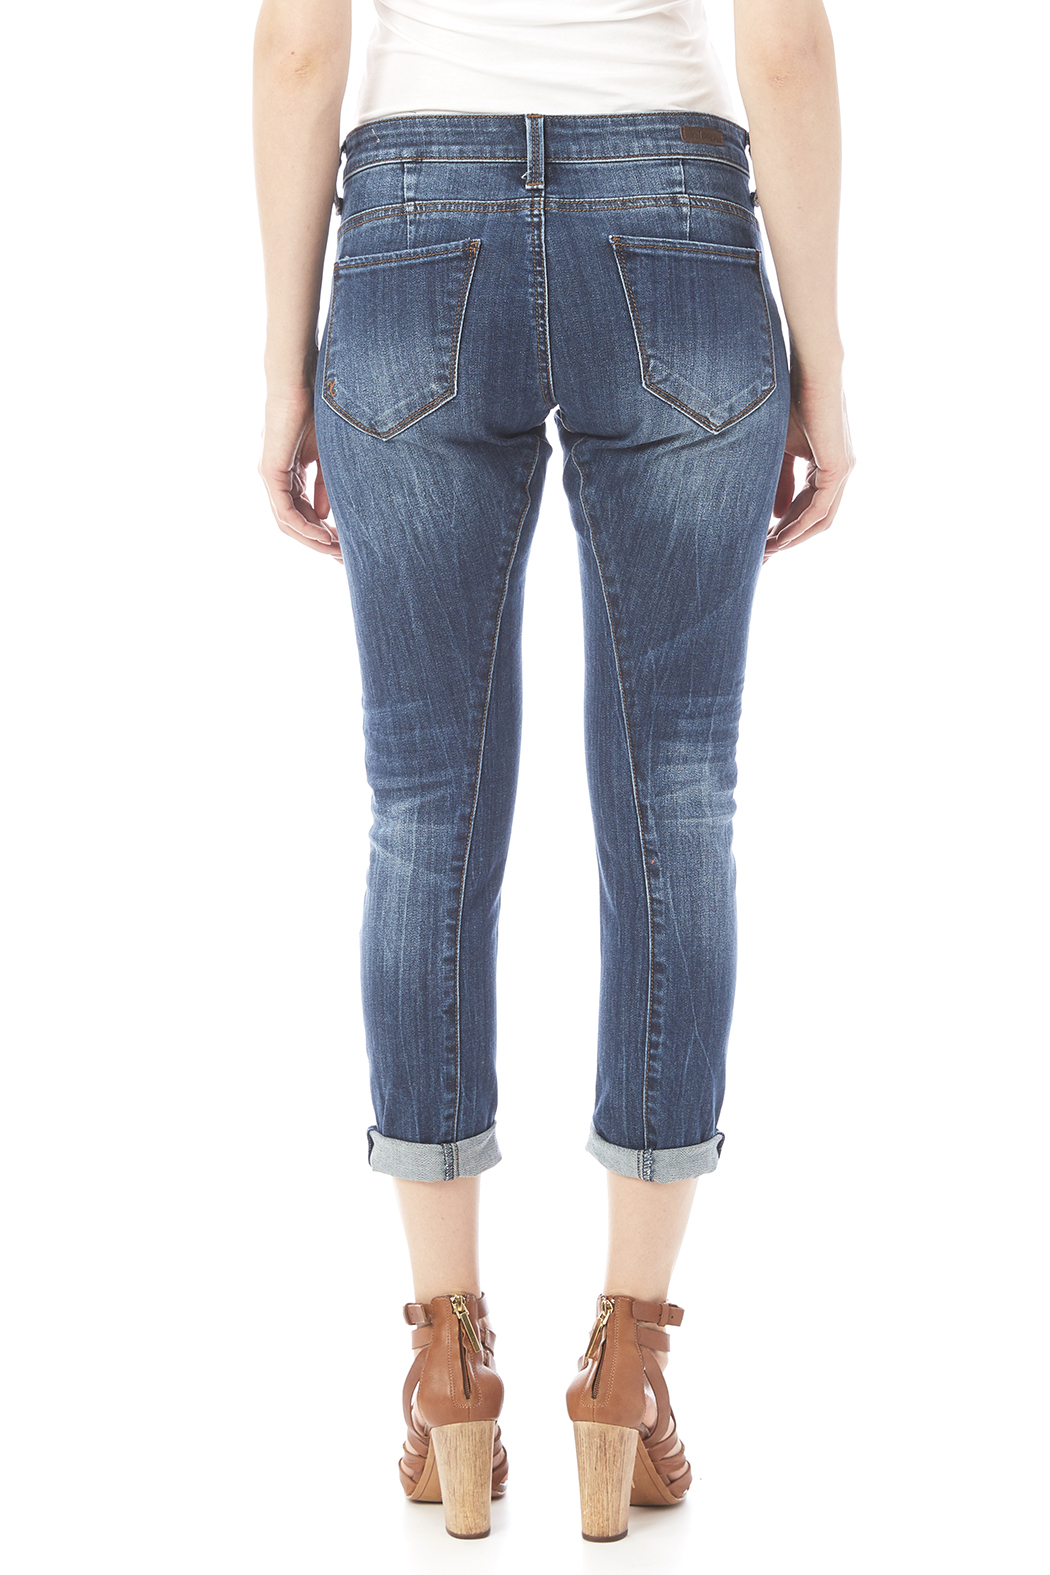 Kut from the Kloth Slim Boyfriend Jean - Back Cropped Image